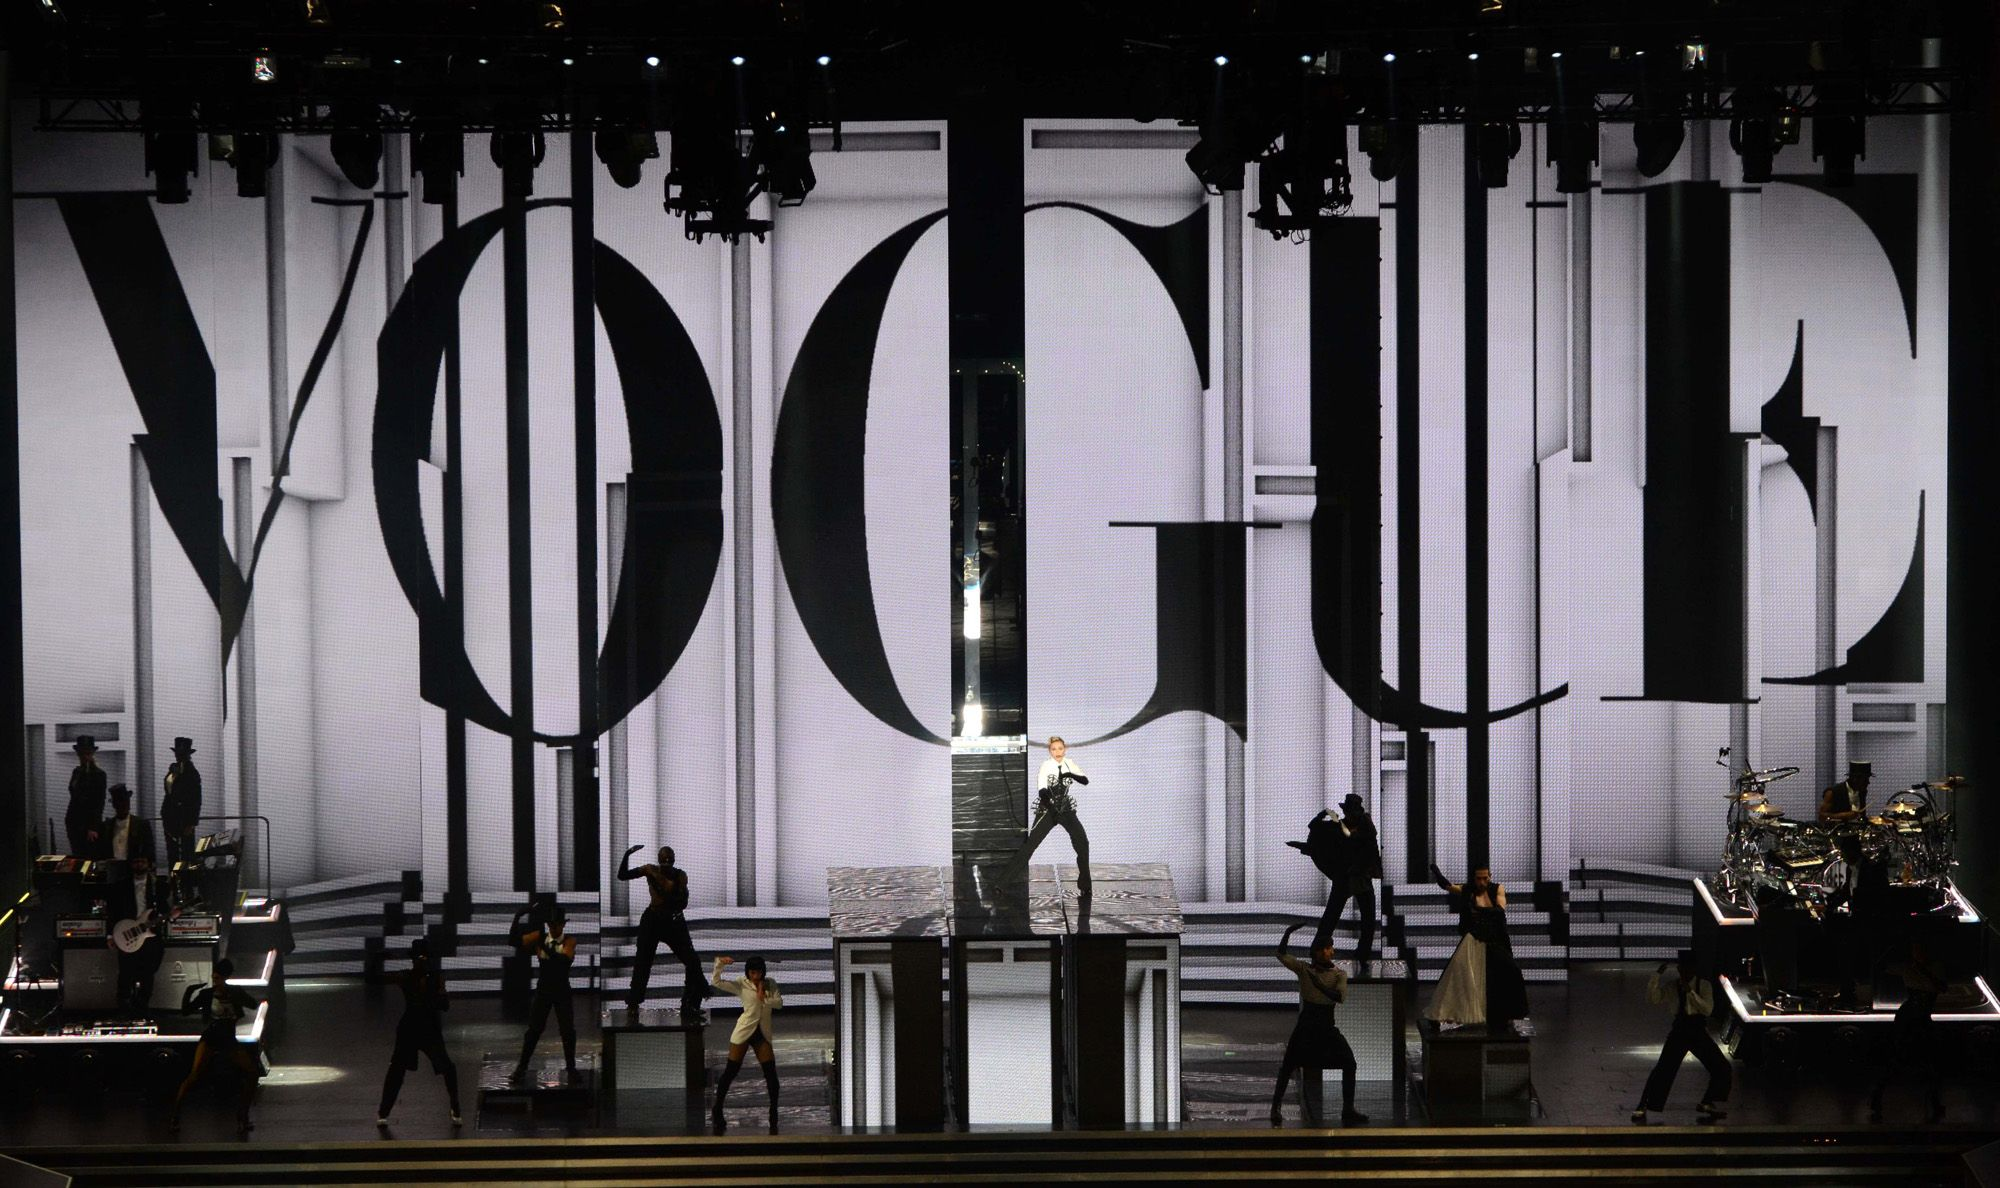 20120804-pictures-madonna-mdna-tour-moment-factory-stage-05